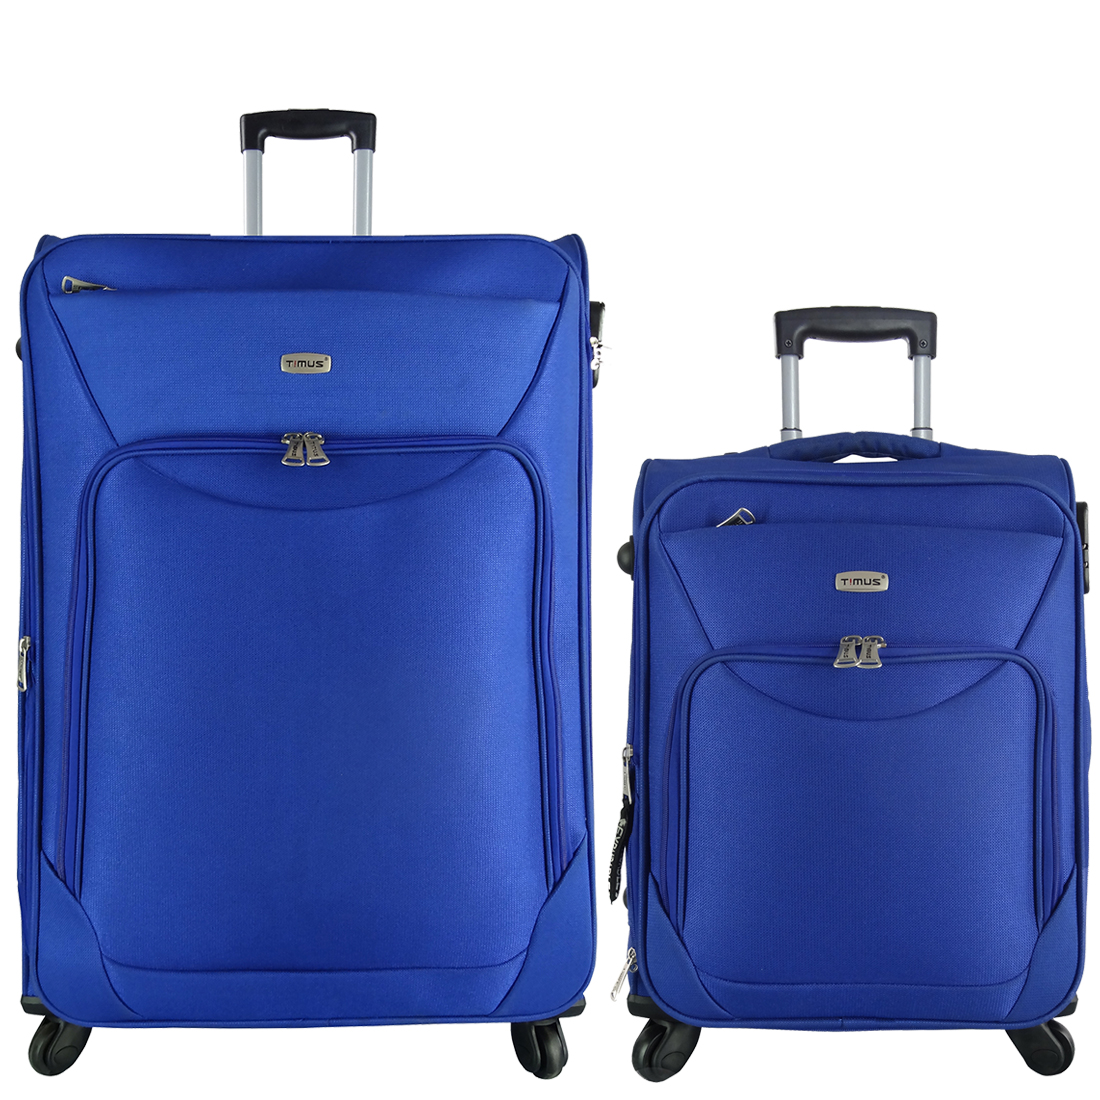 Timus Upbeat Spinner Blue 55   75 cm 4 Wheel Strolley Suitcase SET OF 2 Expandable Cabin and Check in Luggage   28 inch  Blue